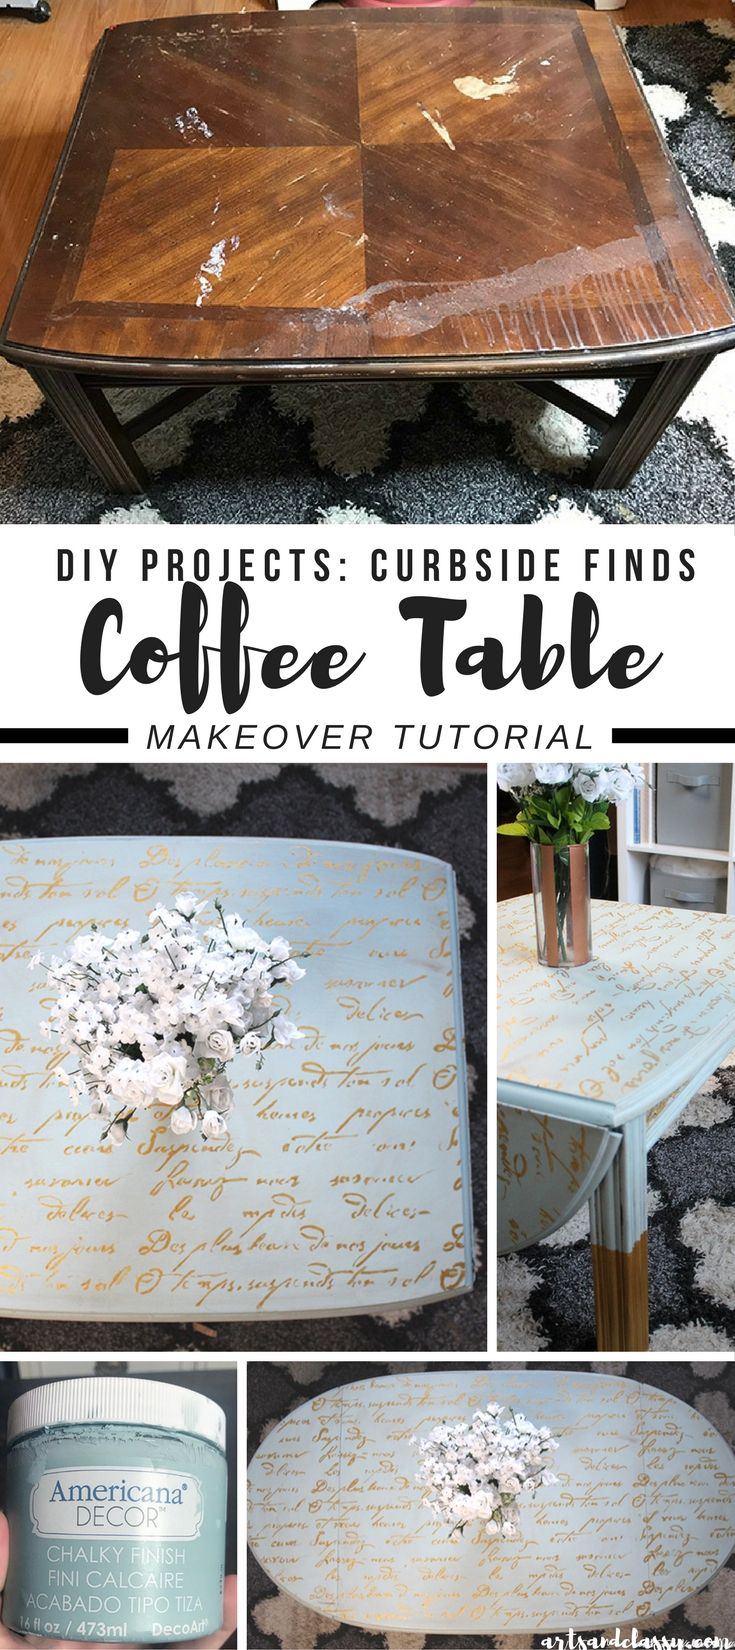 DIY Projects : Coffee Table Furniture Flip Makeover Tutorial | Arts and Classy